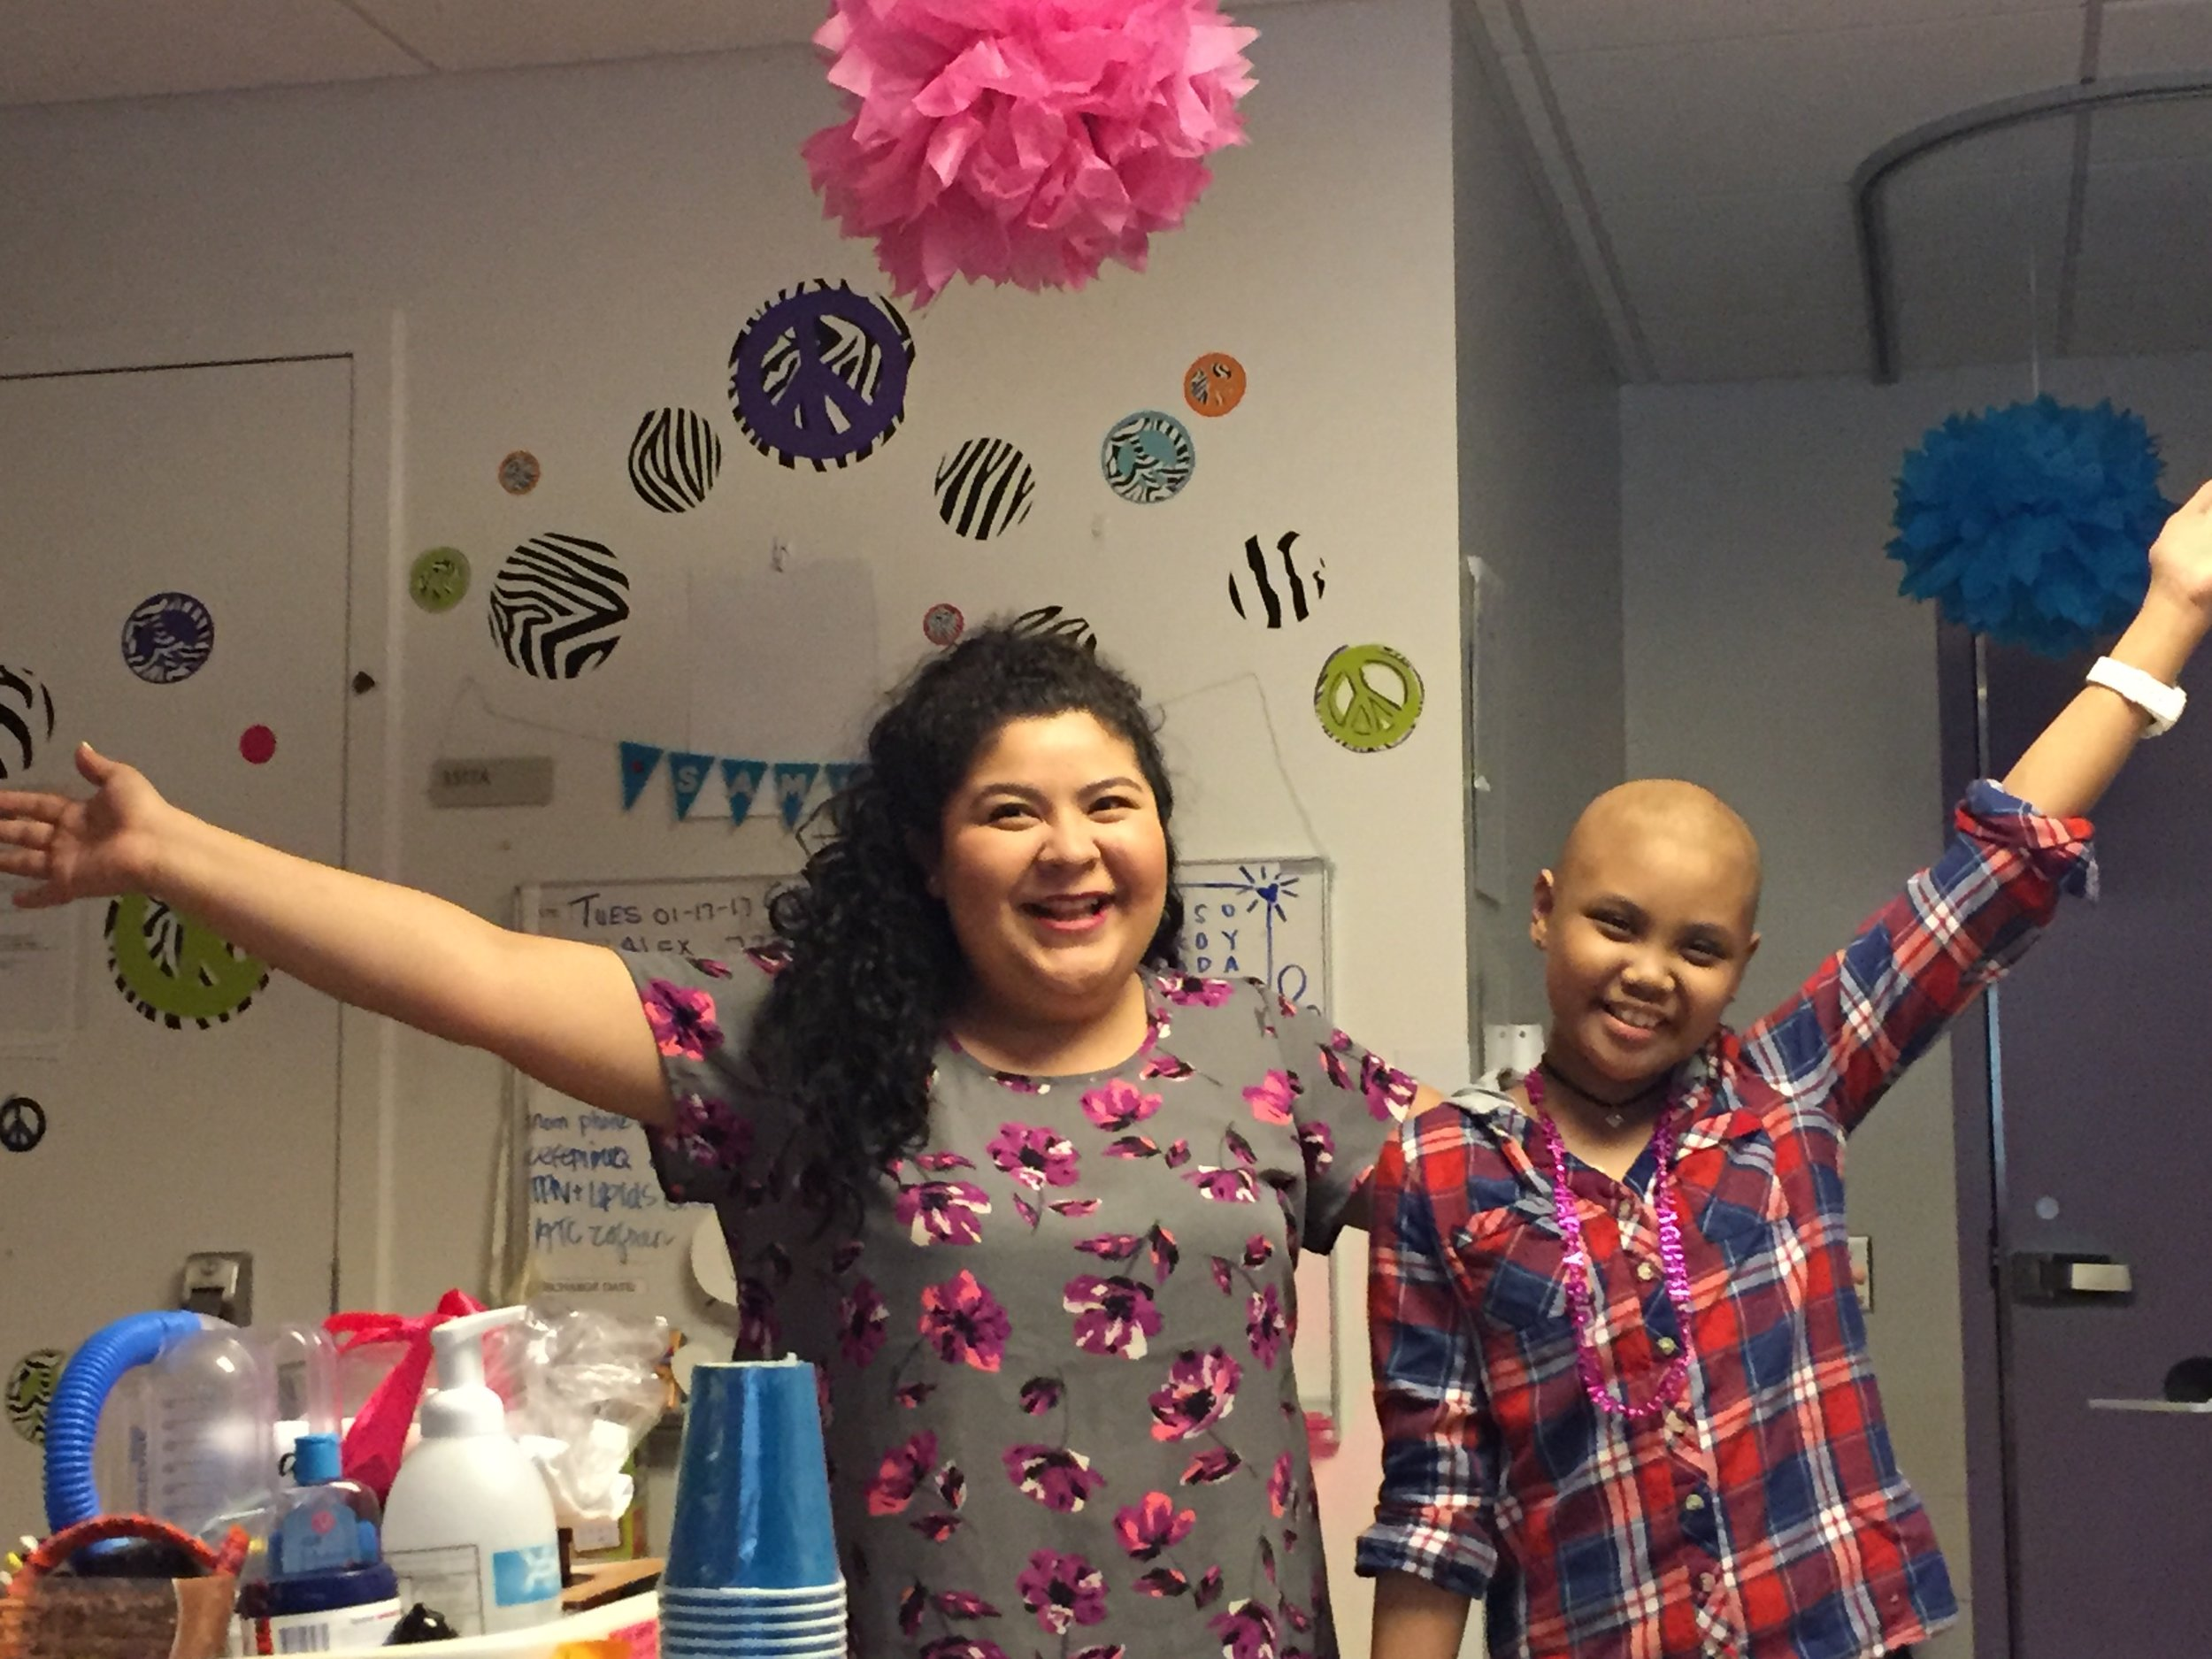 You hosted an awesome party…tell us about it! - We need to know each time you are invited to participate in a hospital birthday party!